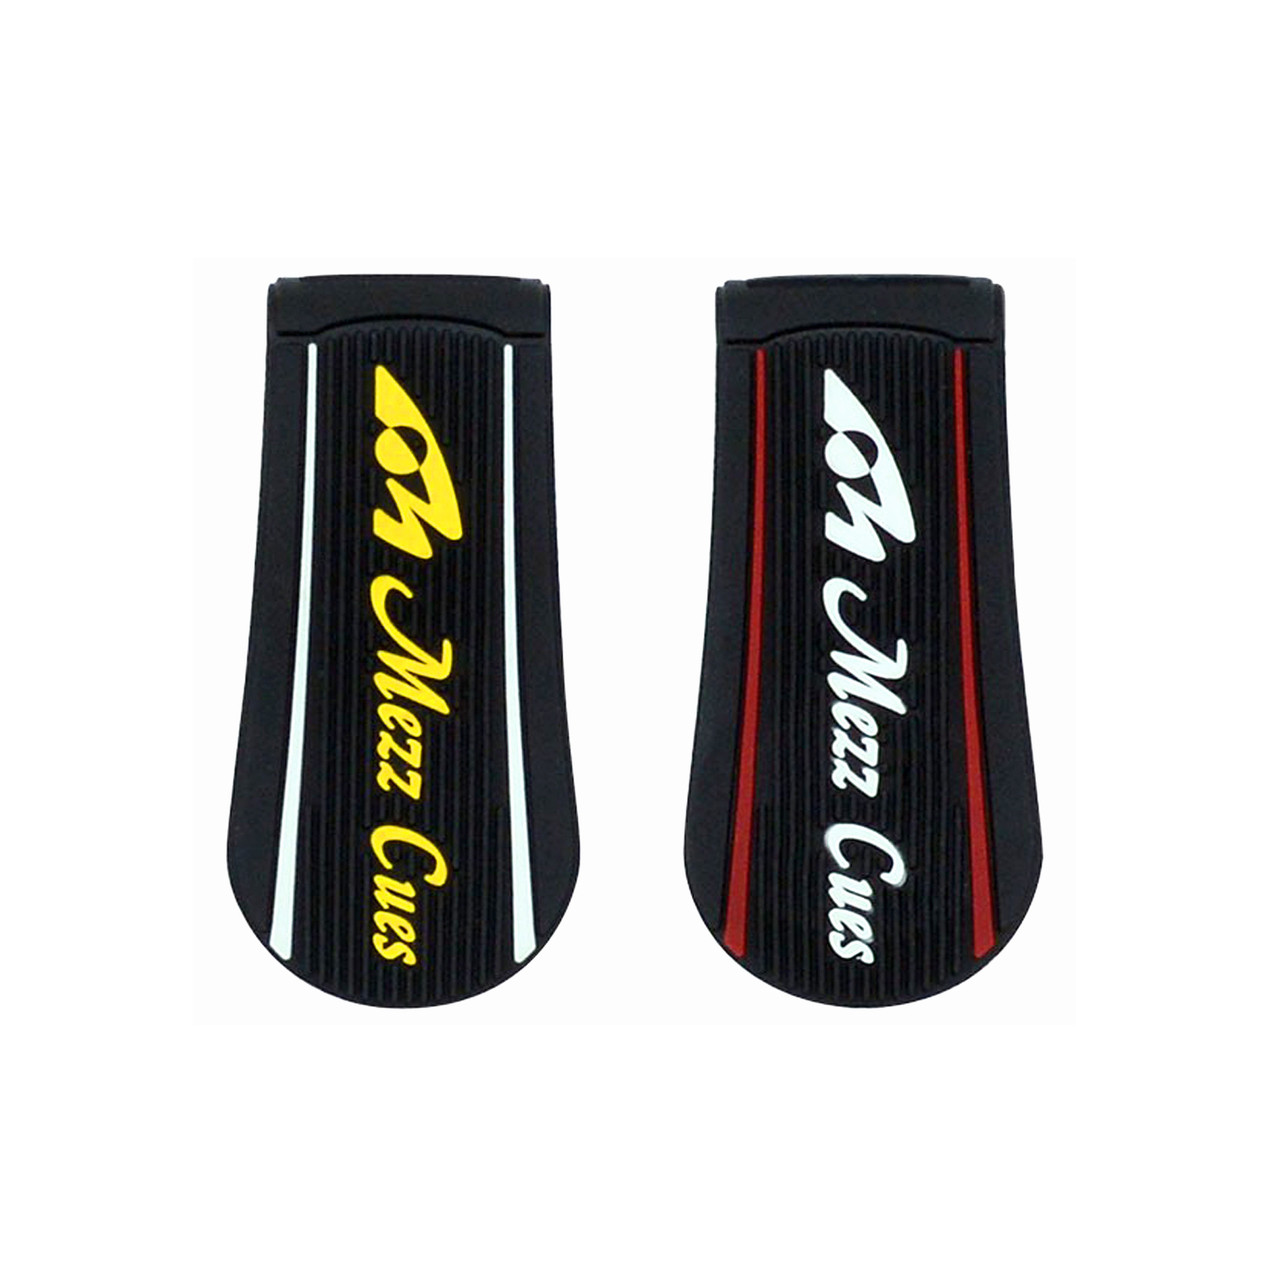 Mezz Chalk Holder - Red and Yellow